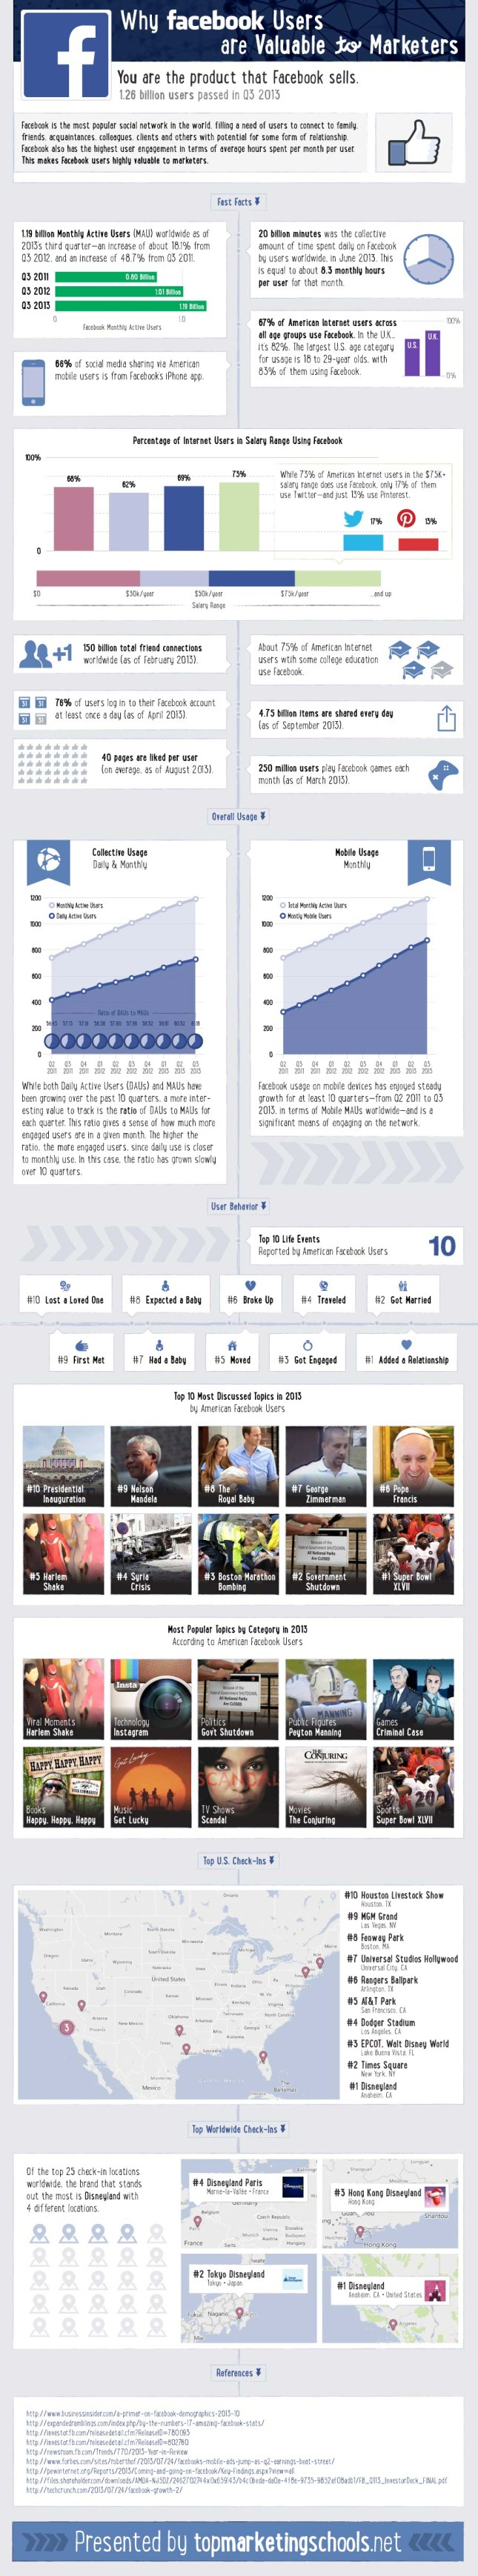 Facebook Infographic